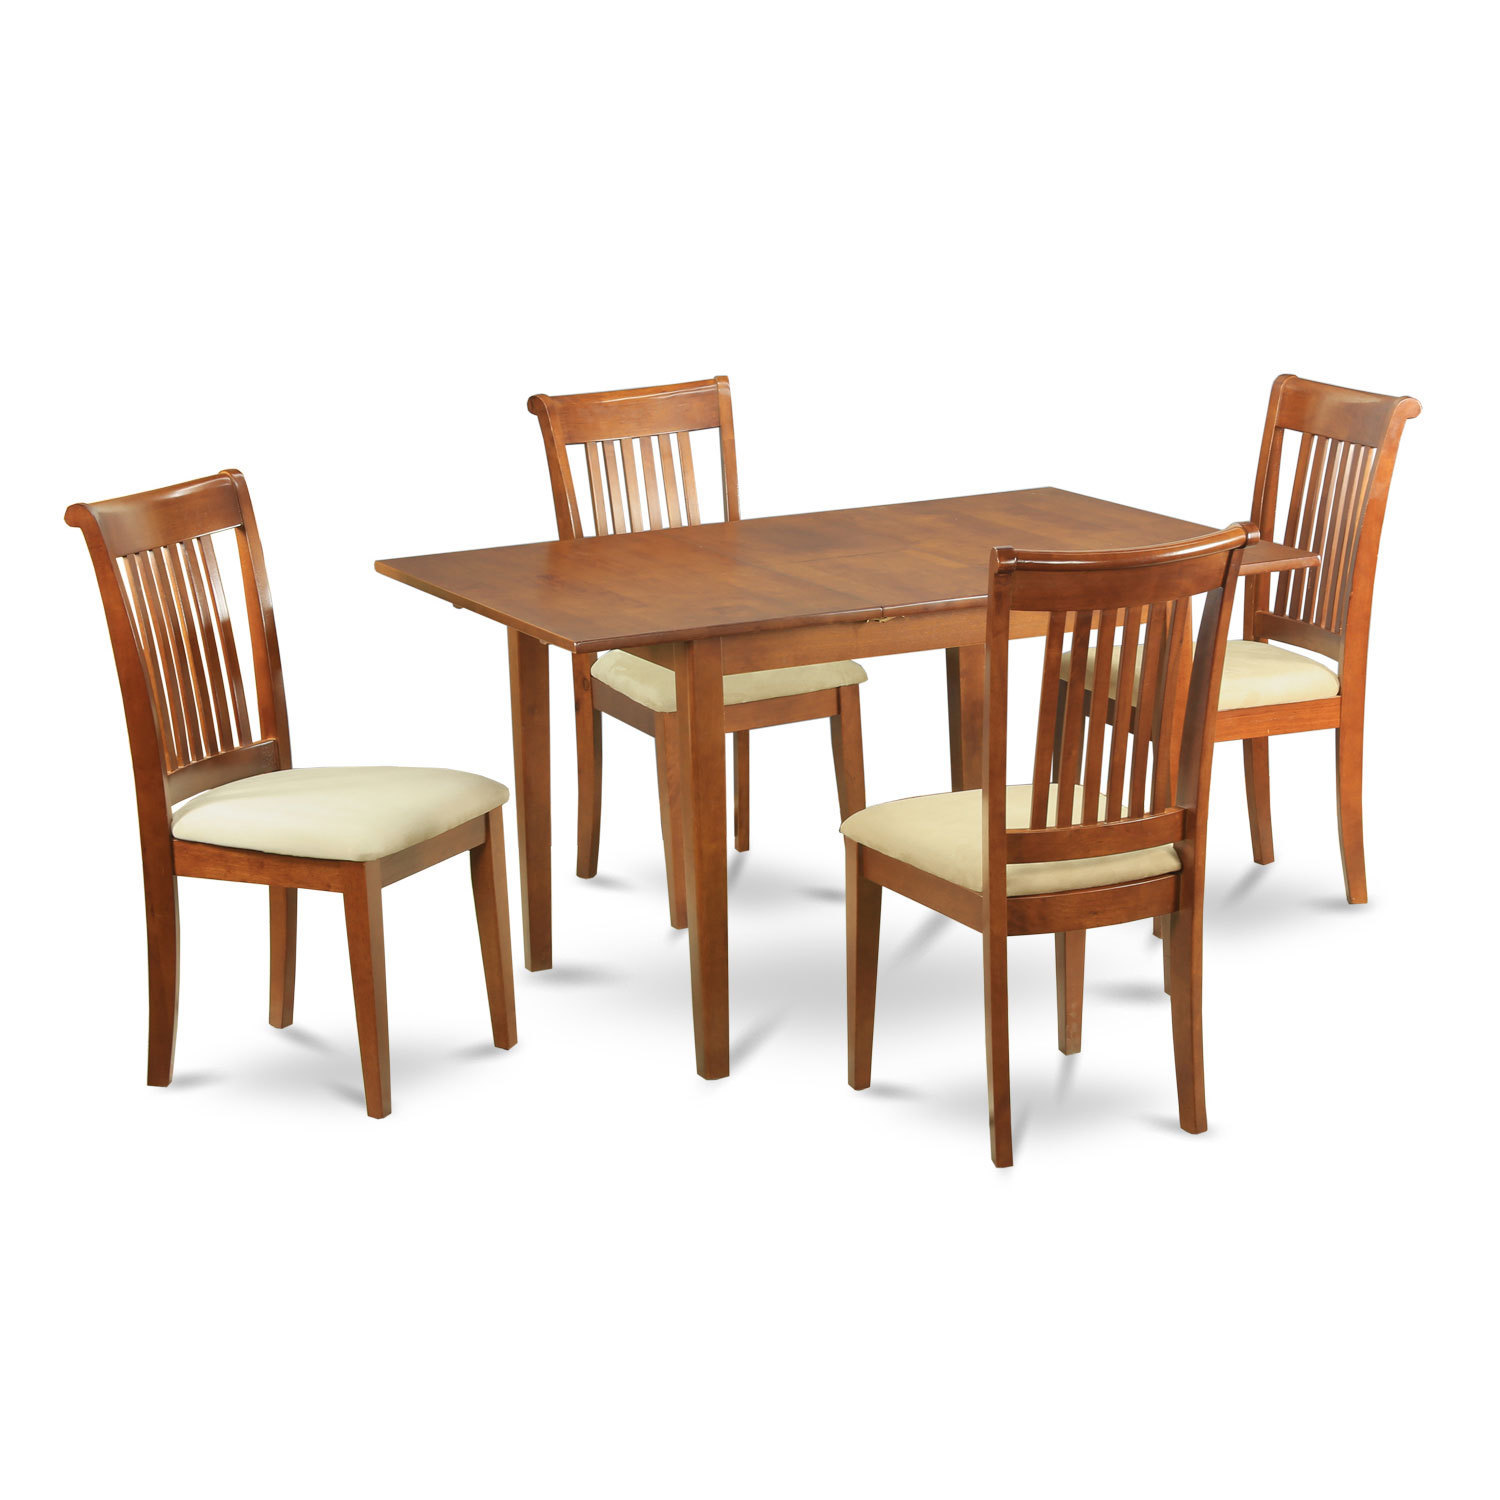 Small dinette set design homesfeed for Compact dining room set